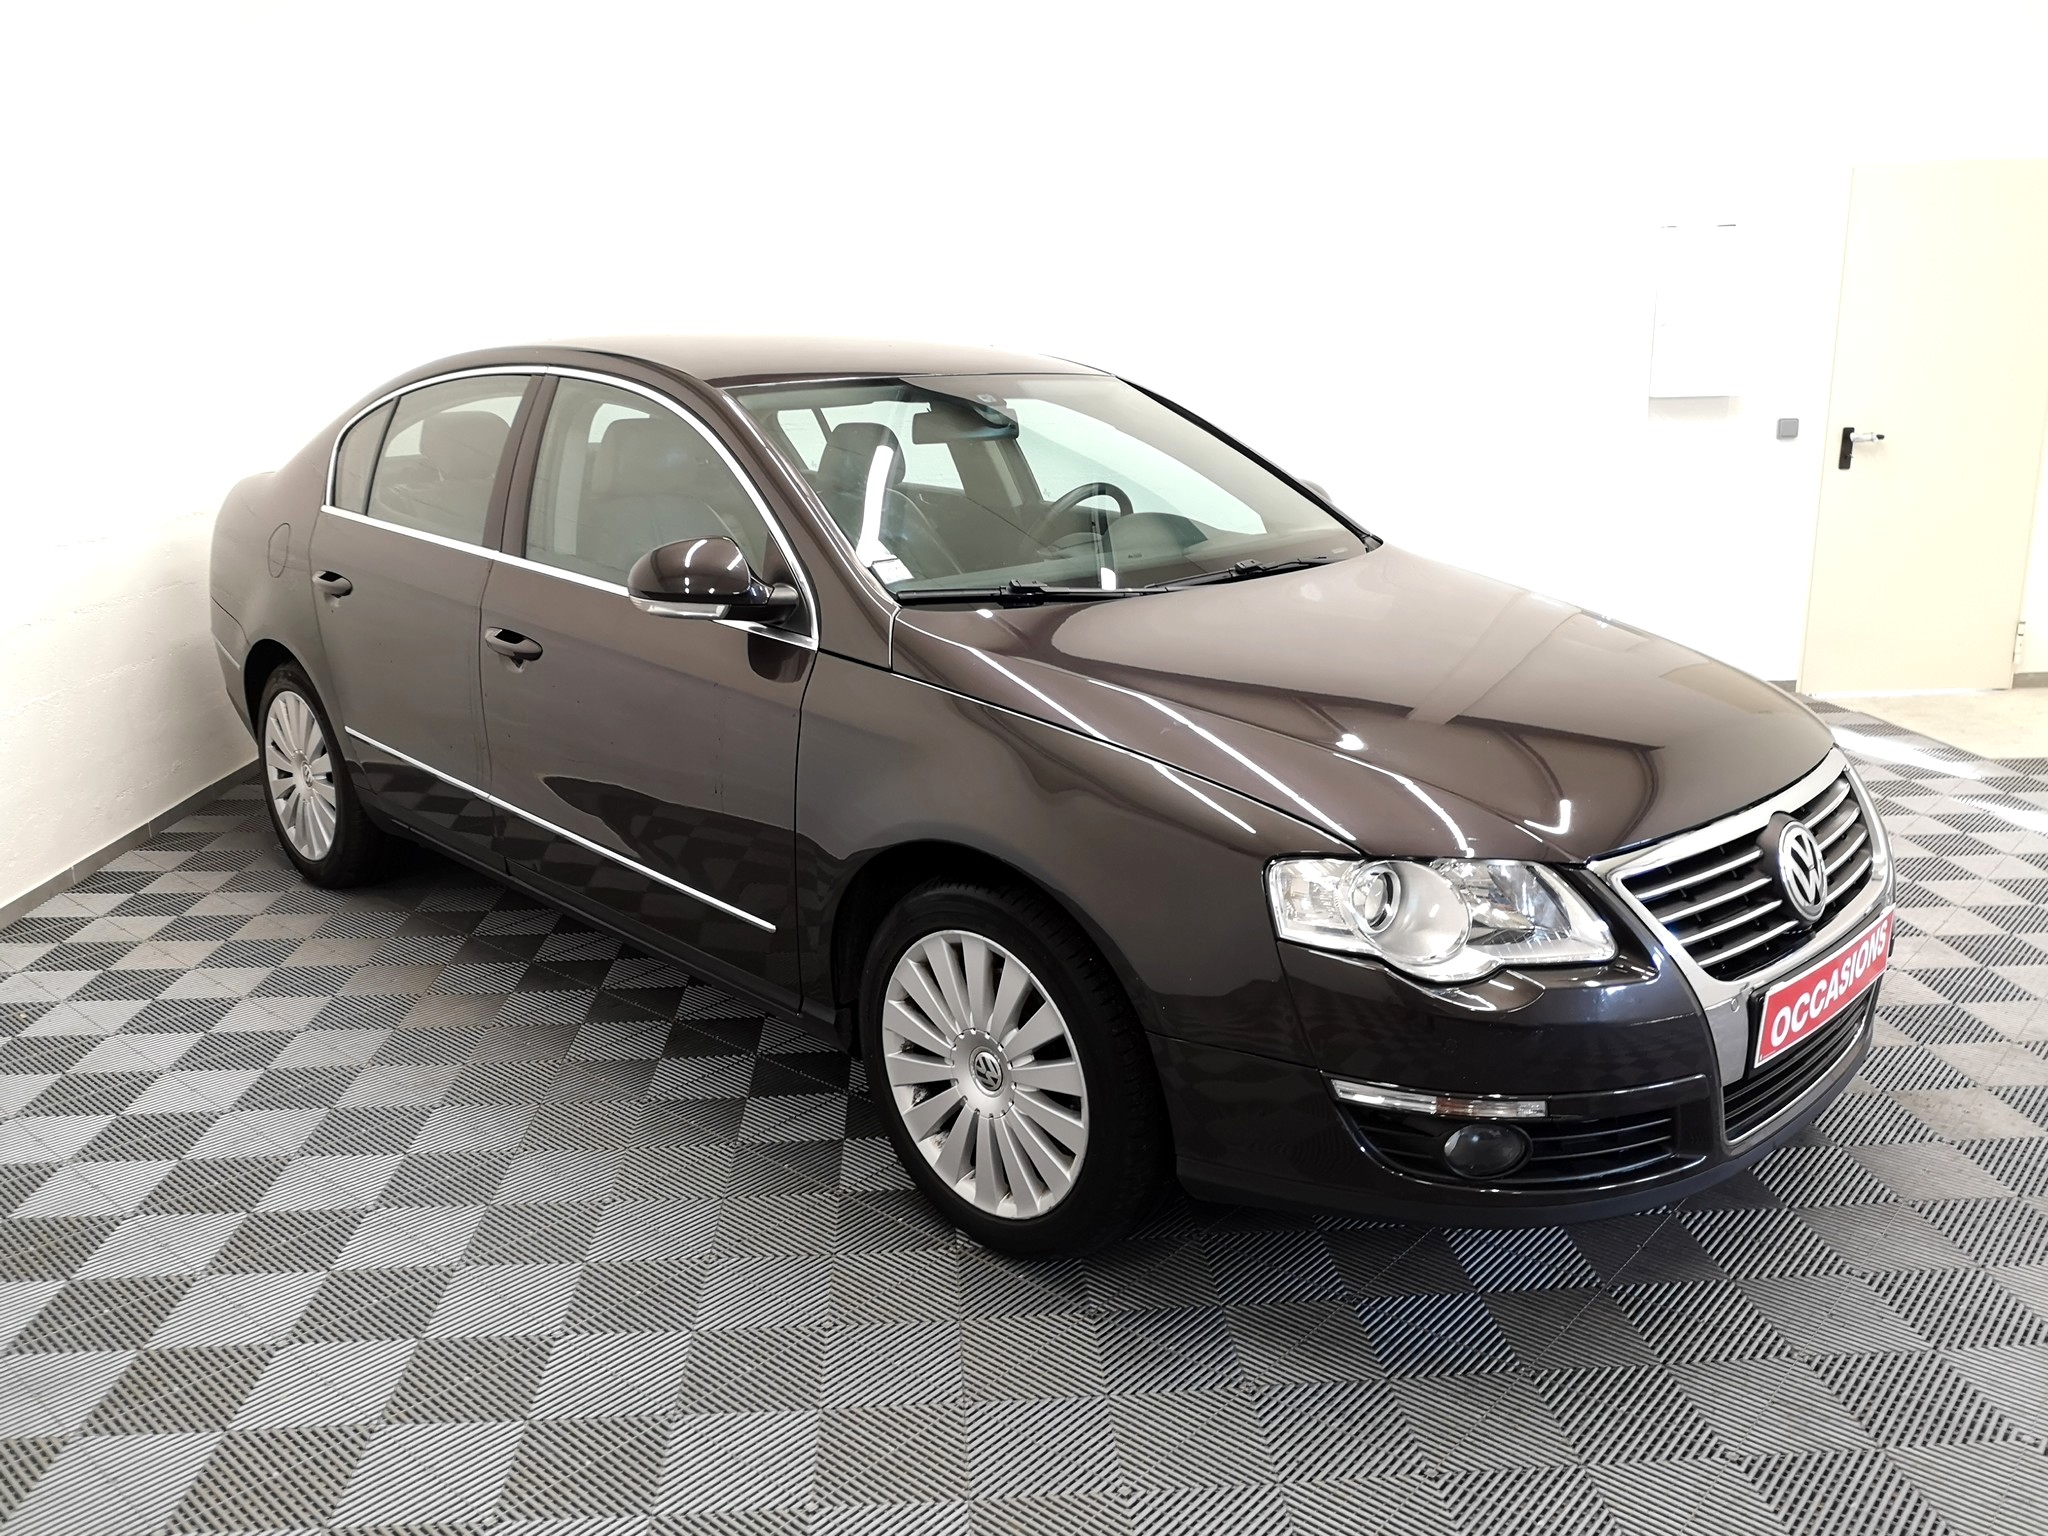 VOLKSWAGEN PASSAT 2007 à 0 € - Photo n°2